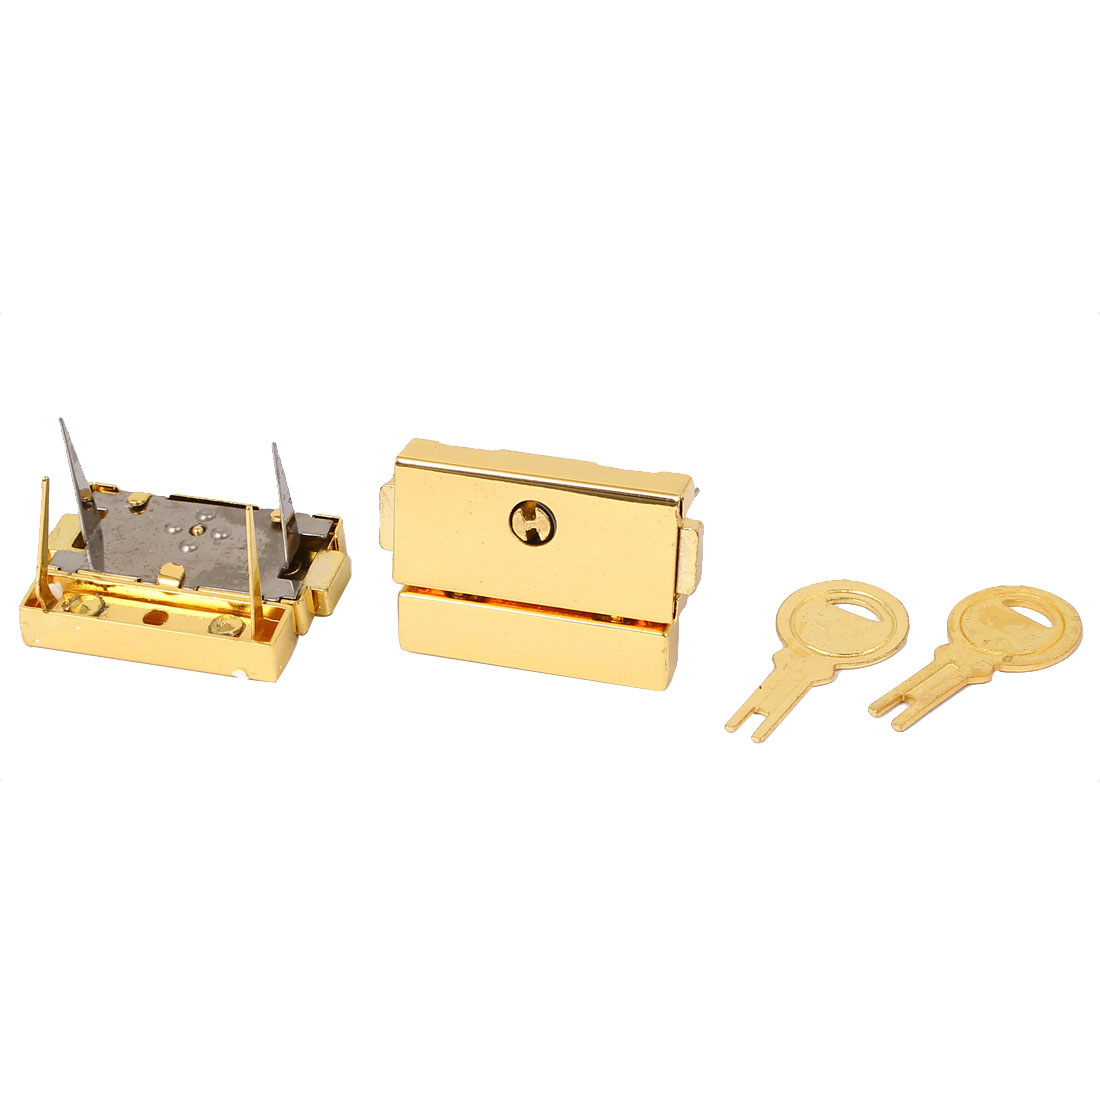 Suitcase Drawer Hasp Boxes Clasp Toggle Lock Latch Gold Tone 2pcs w 2 Key